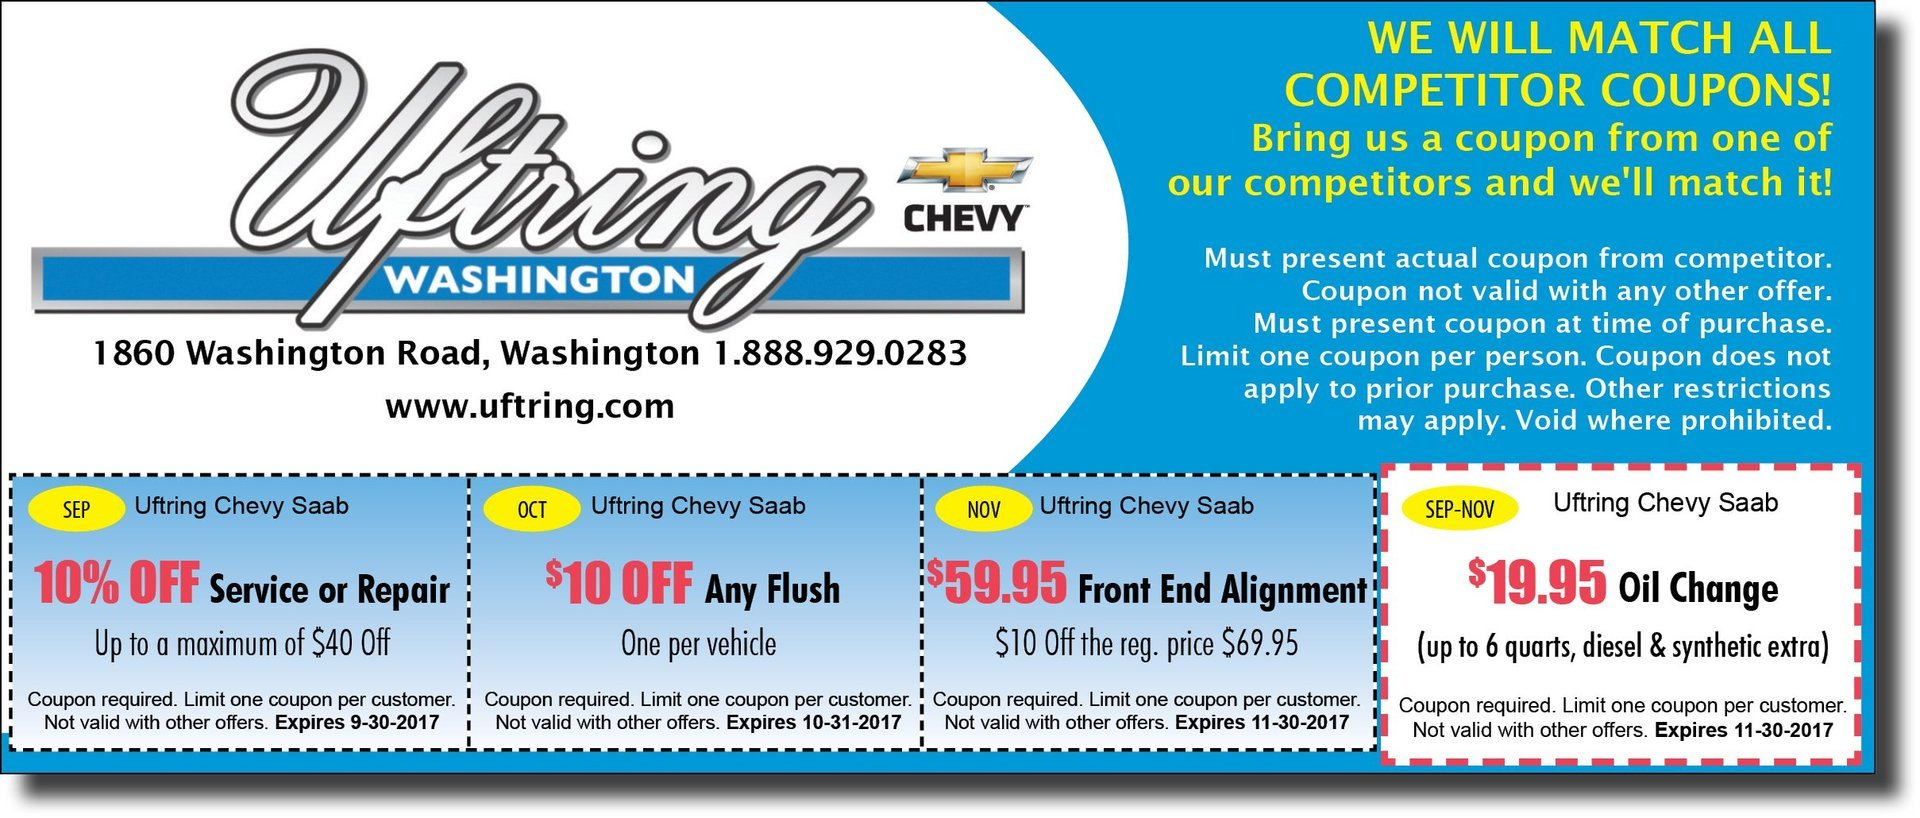 Uftring Chevy Washington $ off service, front end alignment, oil change $19.95 coupons Washington, IL